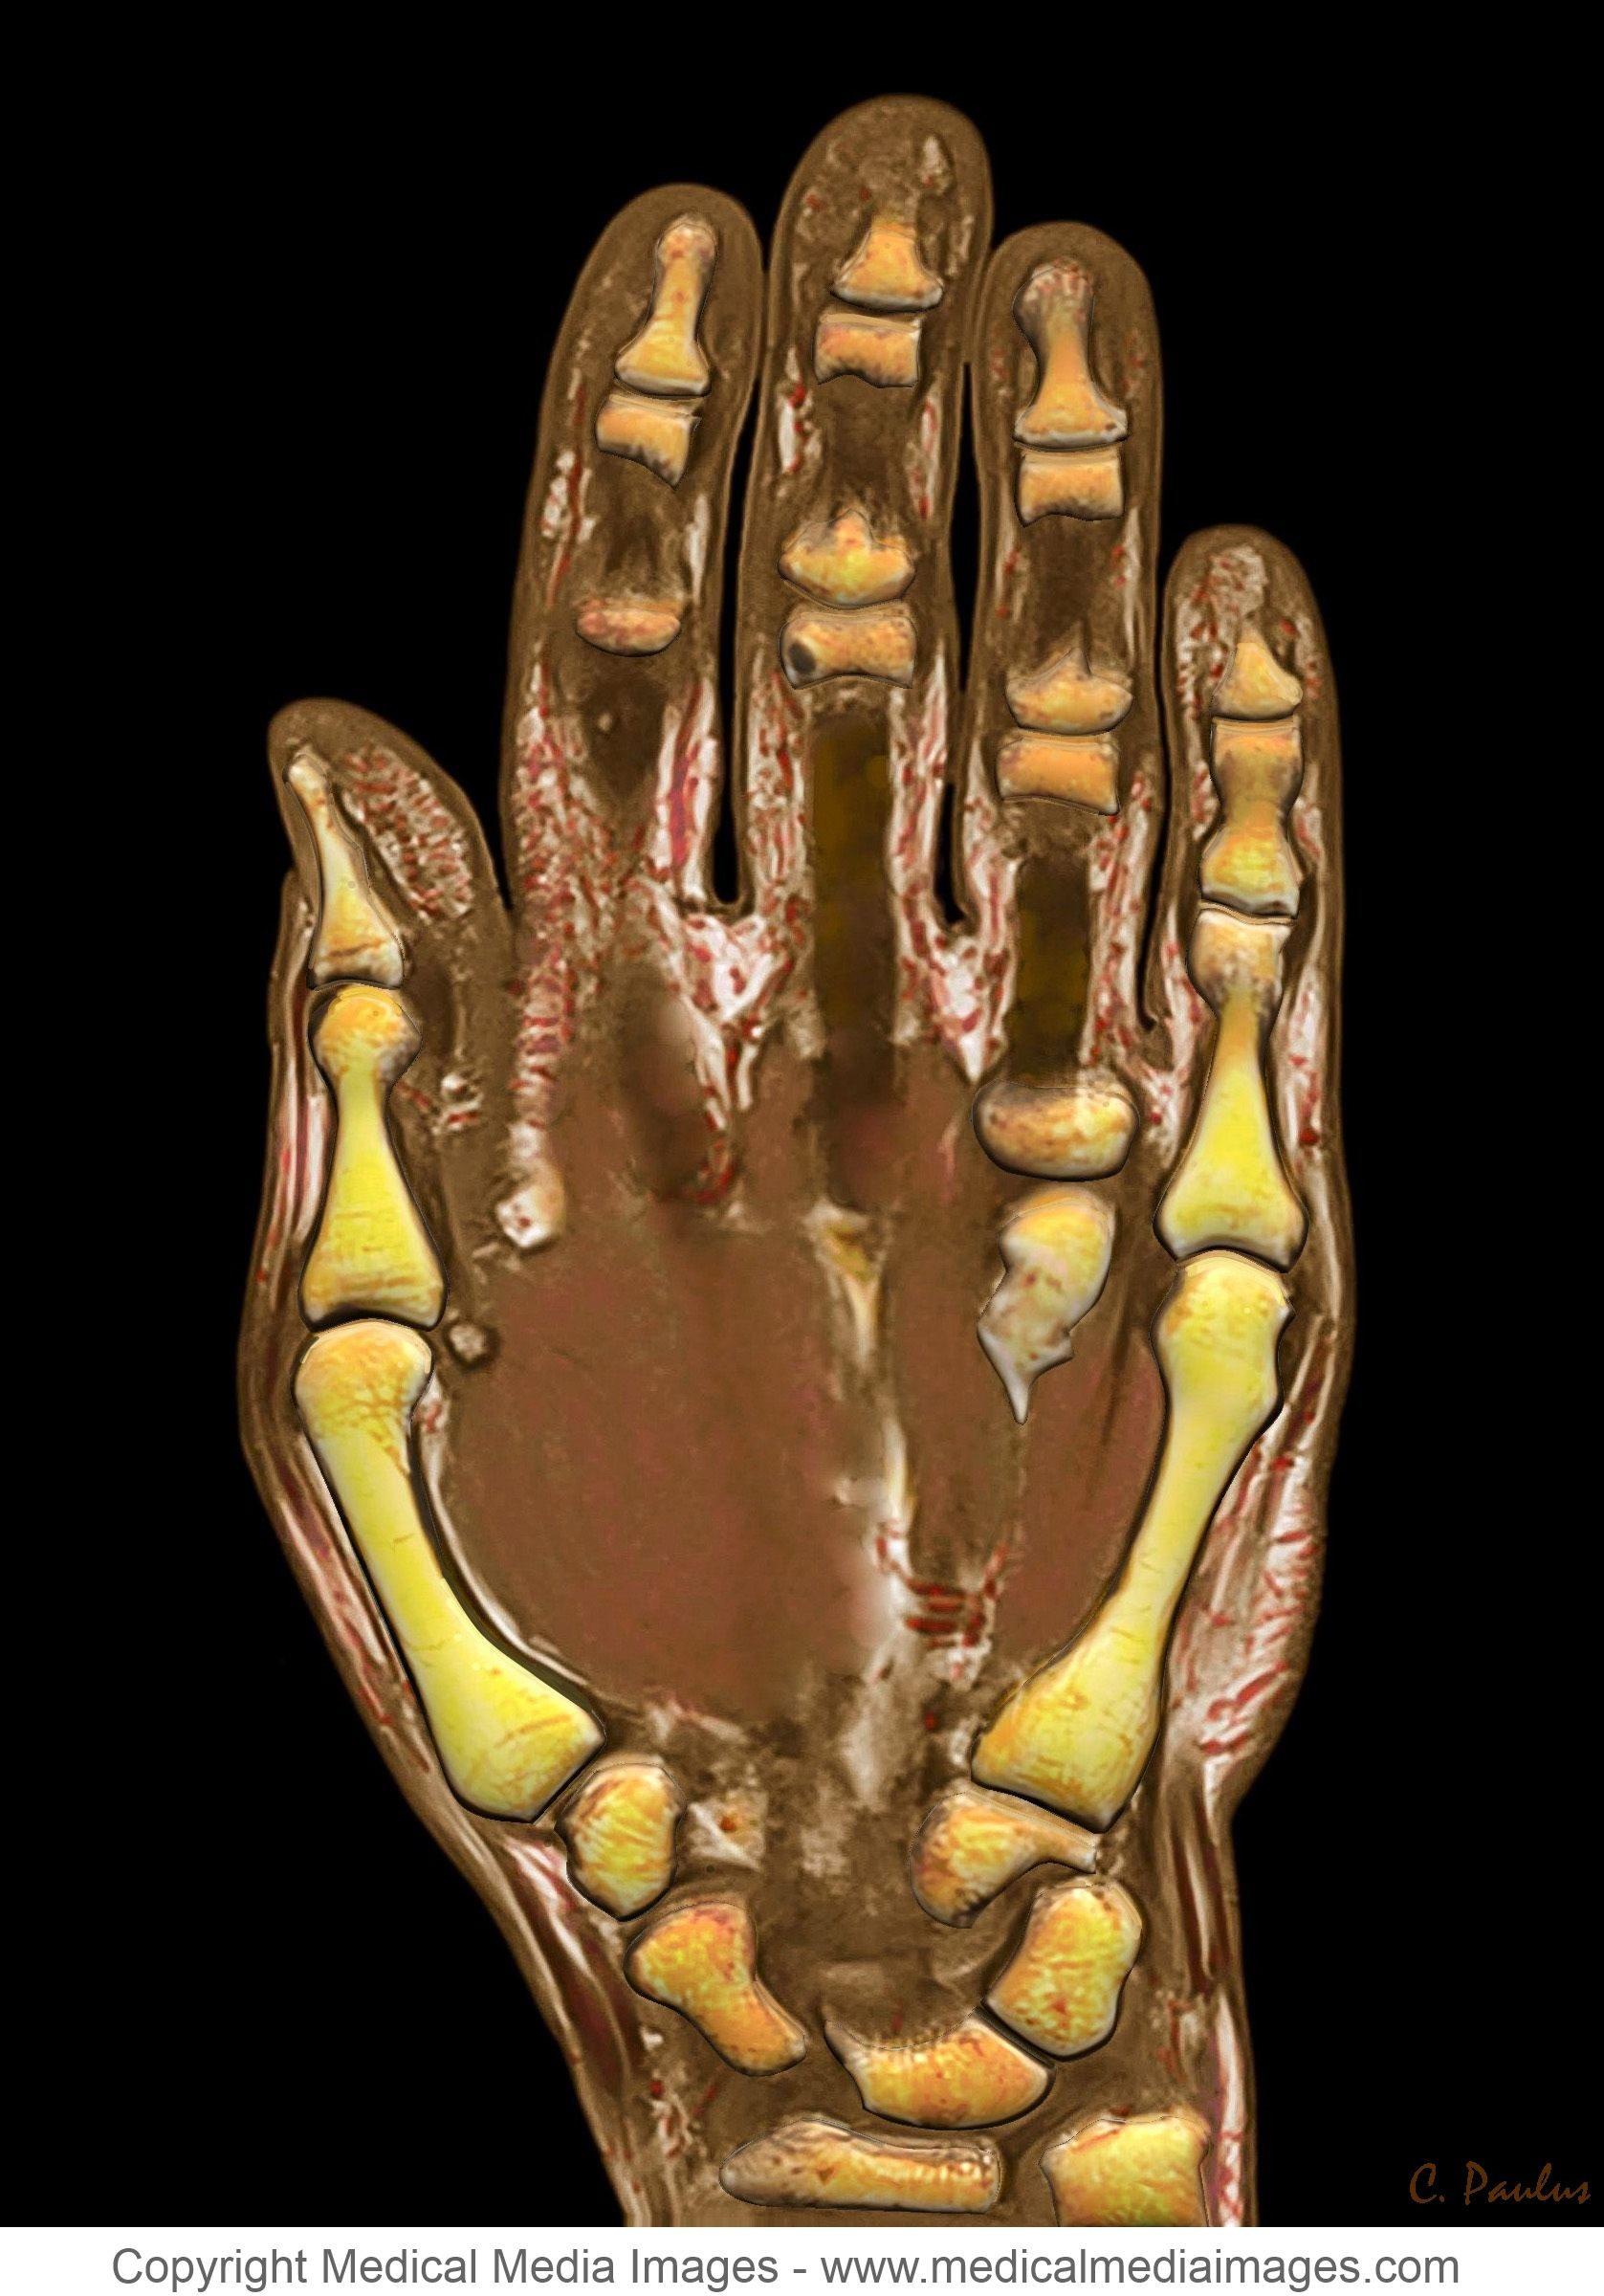 A 3-D Color MRI of the Human Hand. Ideal for Medical Websites and ...